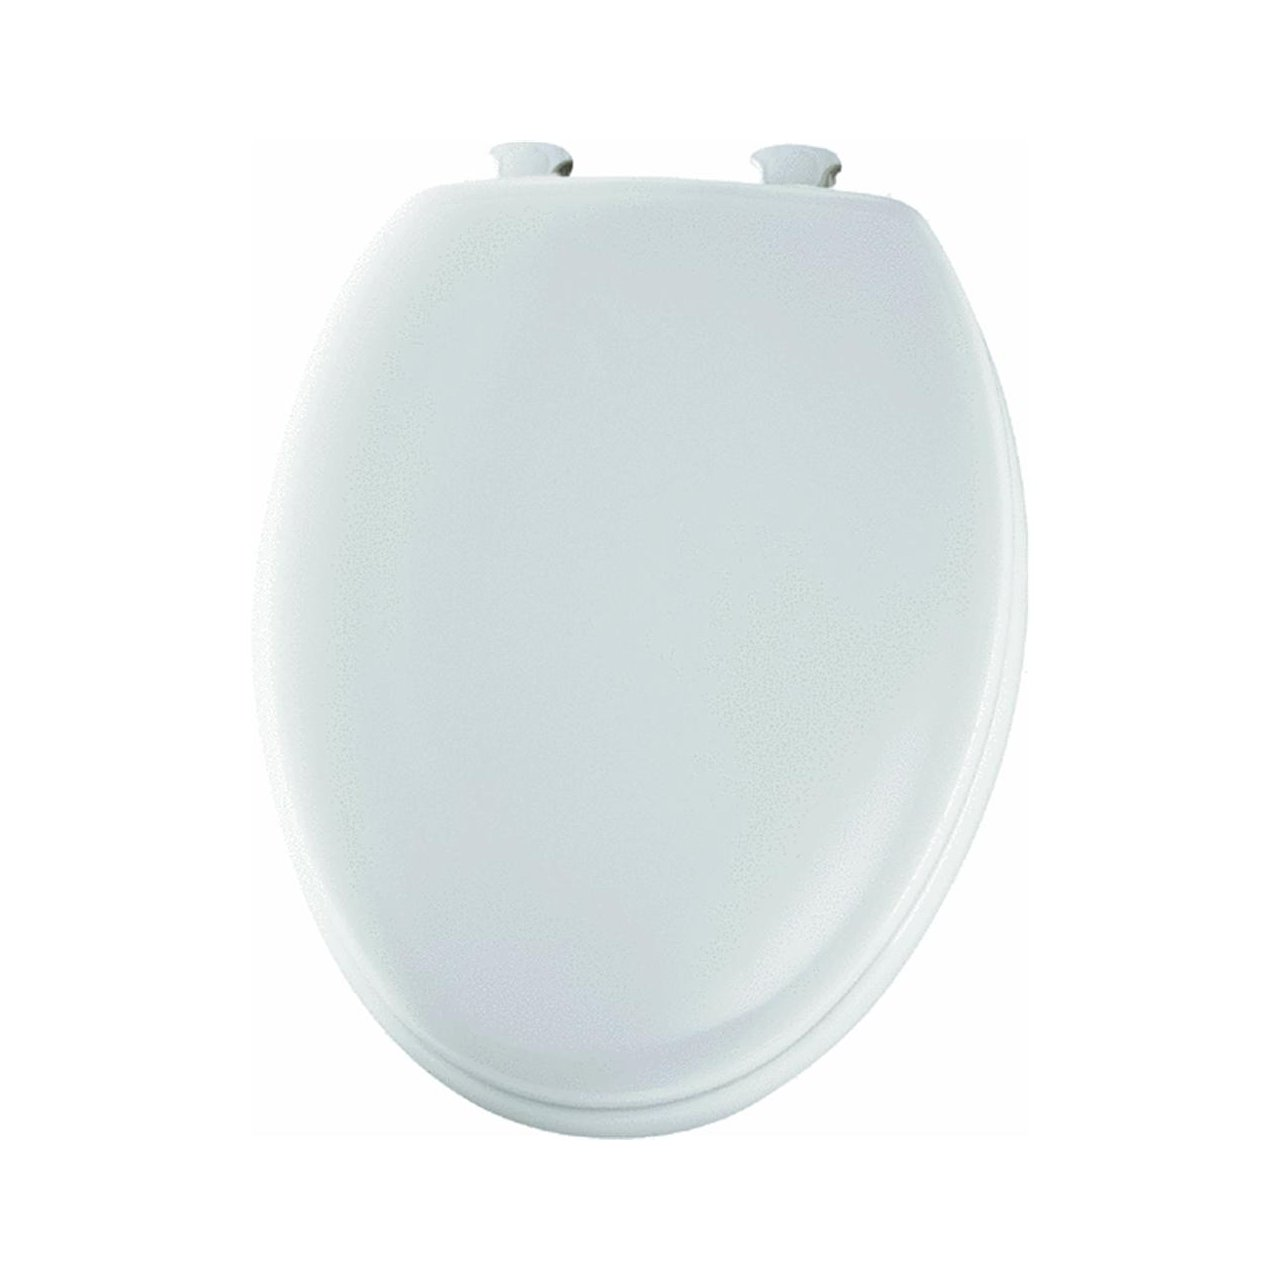 Cream Plastic Toilet Seat. Mayfair 146EC 000 Molded Wood Toilet Seat with Lift Off Hinges  Elongated White Antimicrobial Amazon com